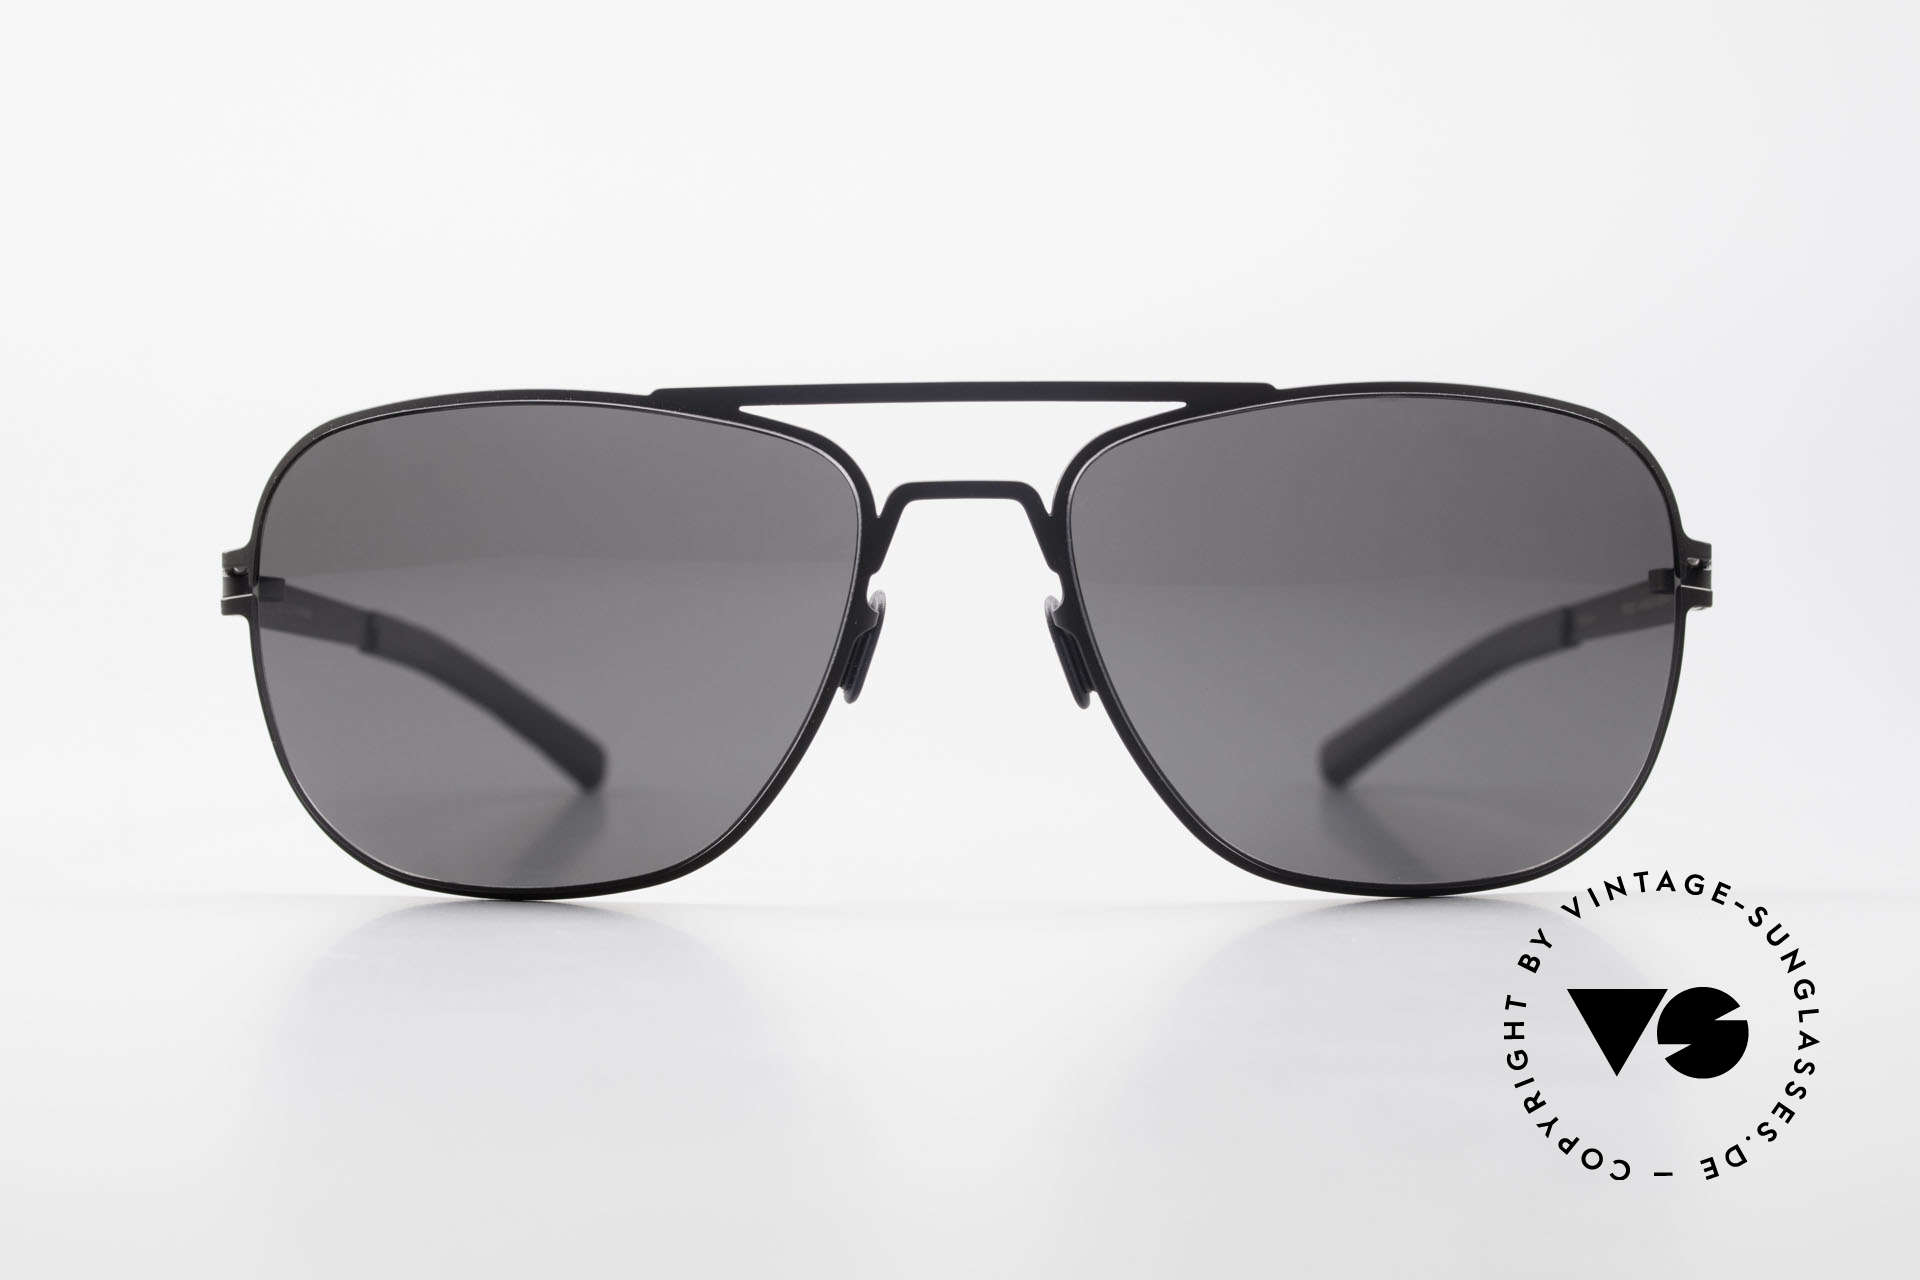 Mykita Howard Polarized Sunglasses Unisex, MYKITA: the youngest brand in our vintage collection, Made for Men and Women